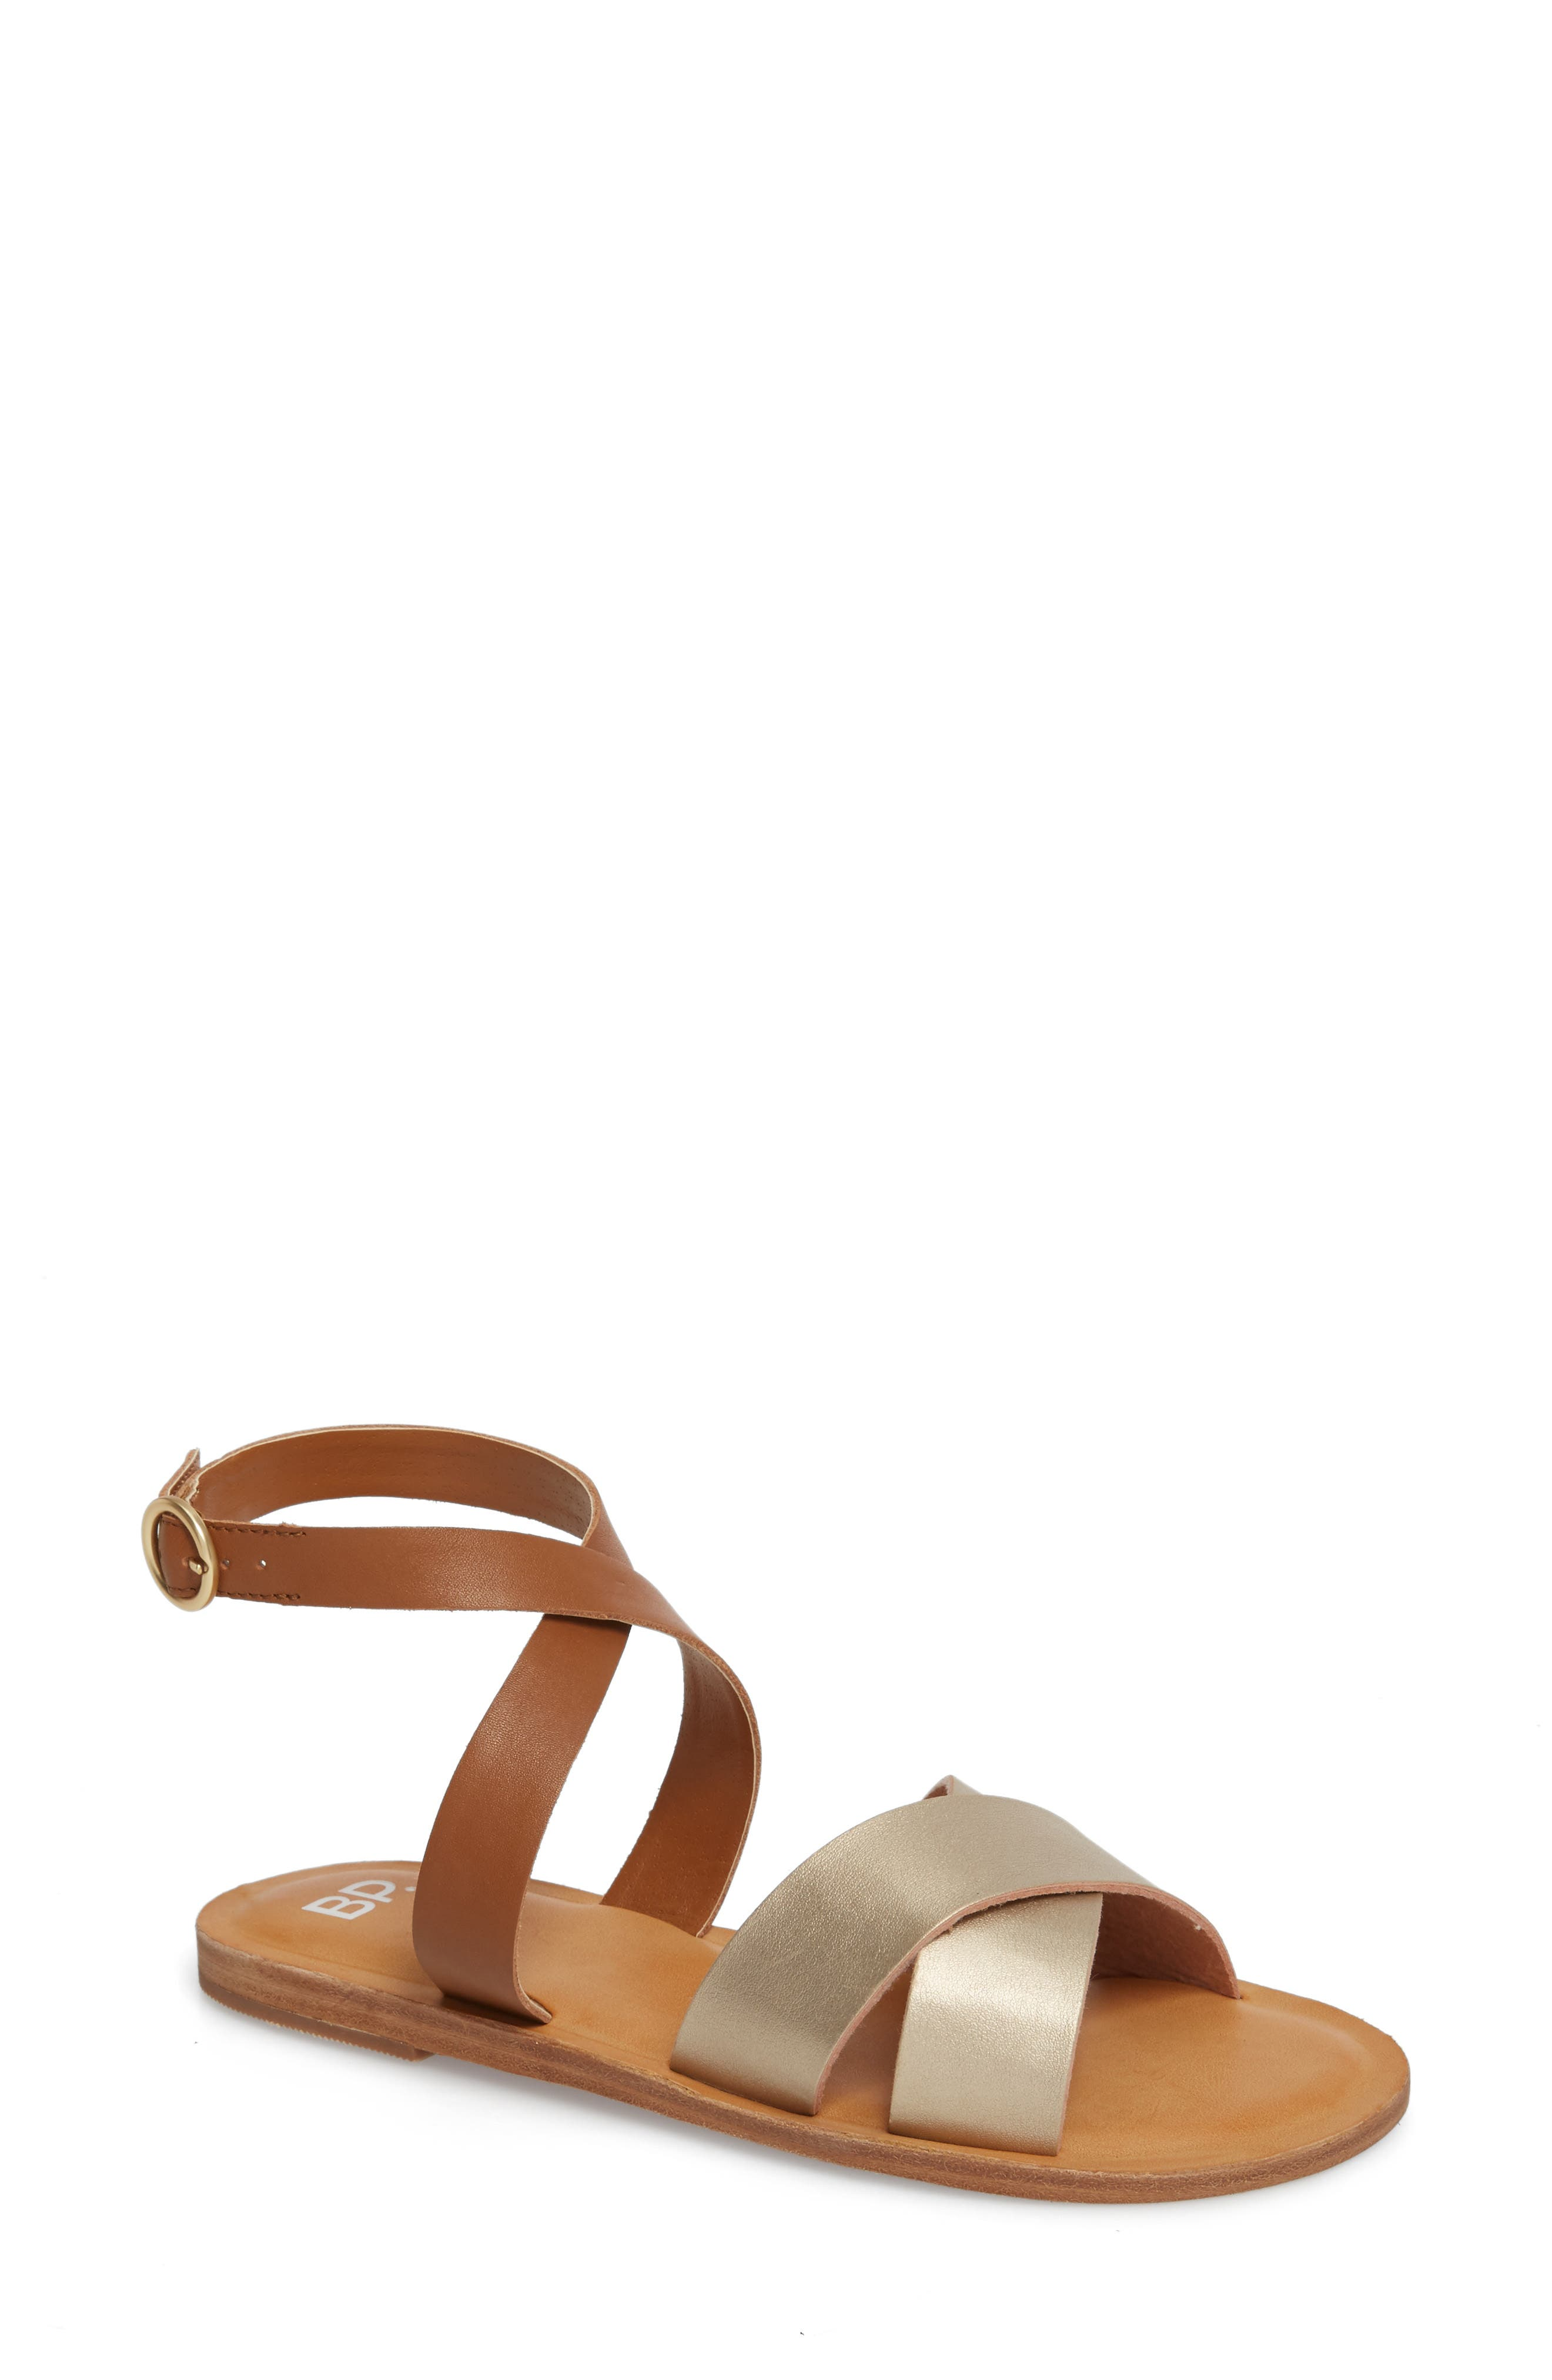 Sandals for Women On Sale, Black, Leather, 2017, 3 3.5 4.5 Tod's